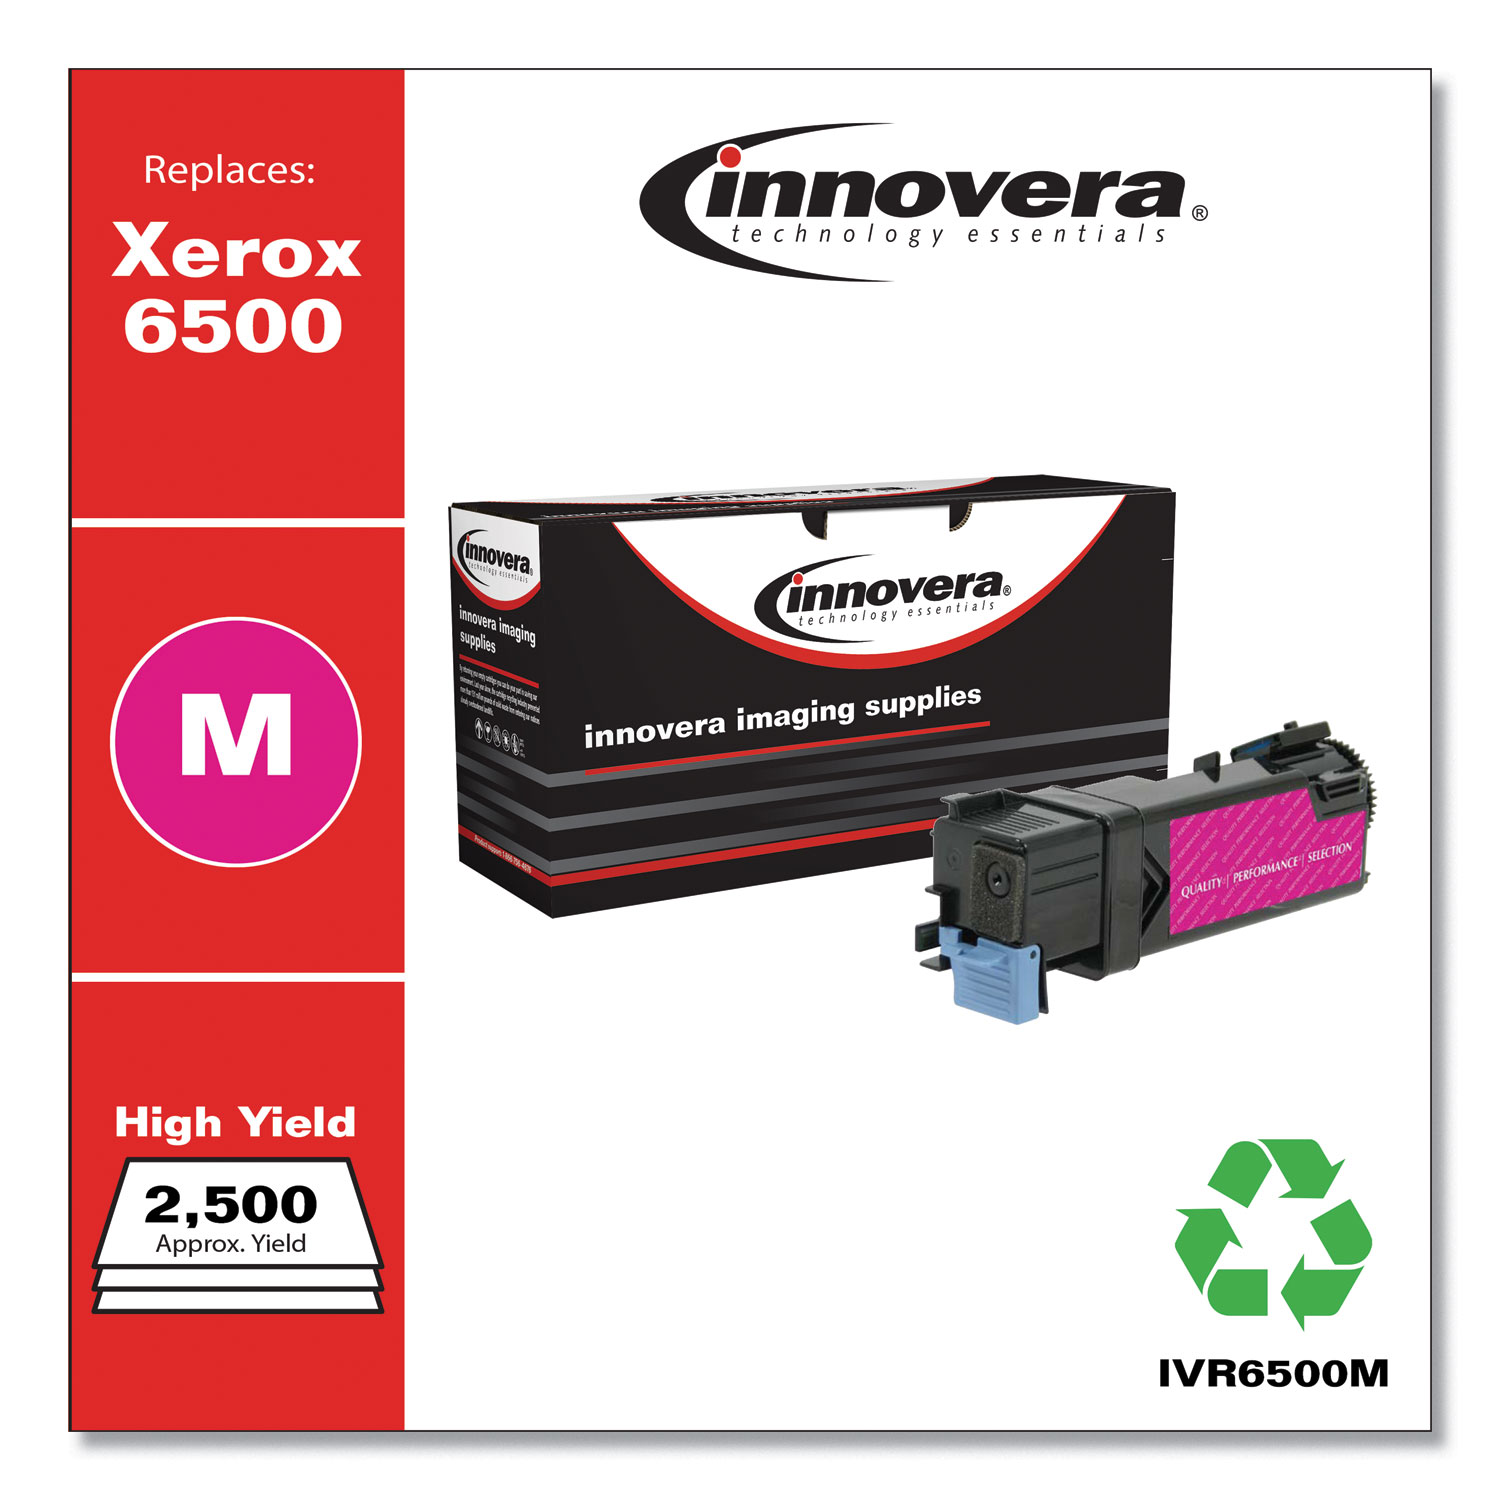 Remanufactured Magenta High-Yield Toner, Replacement for Xerox 6500 (106R01595), 2,500 Page-Yield IVR6500M